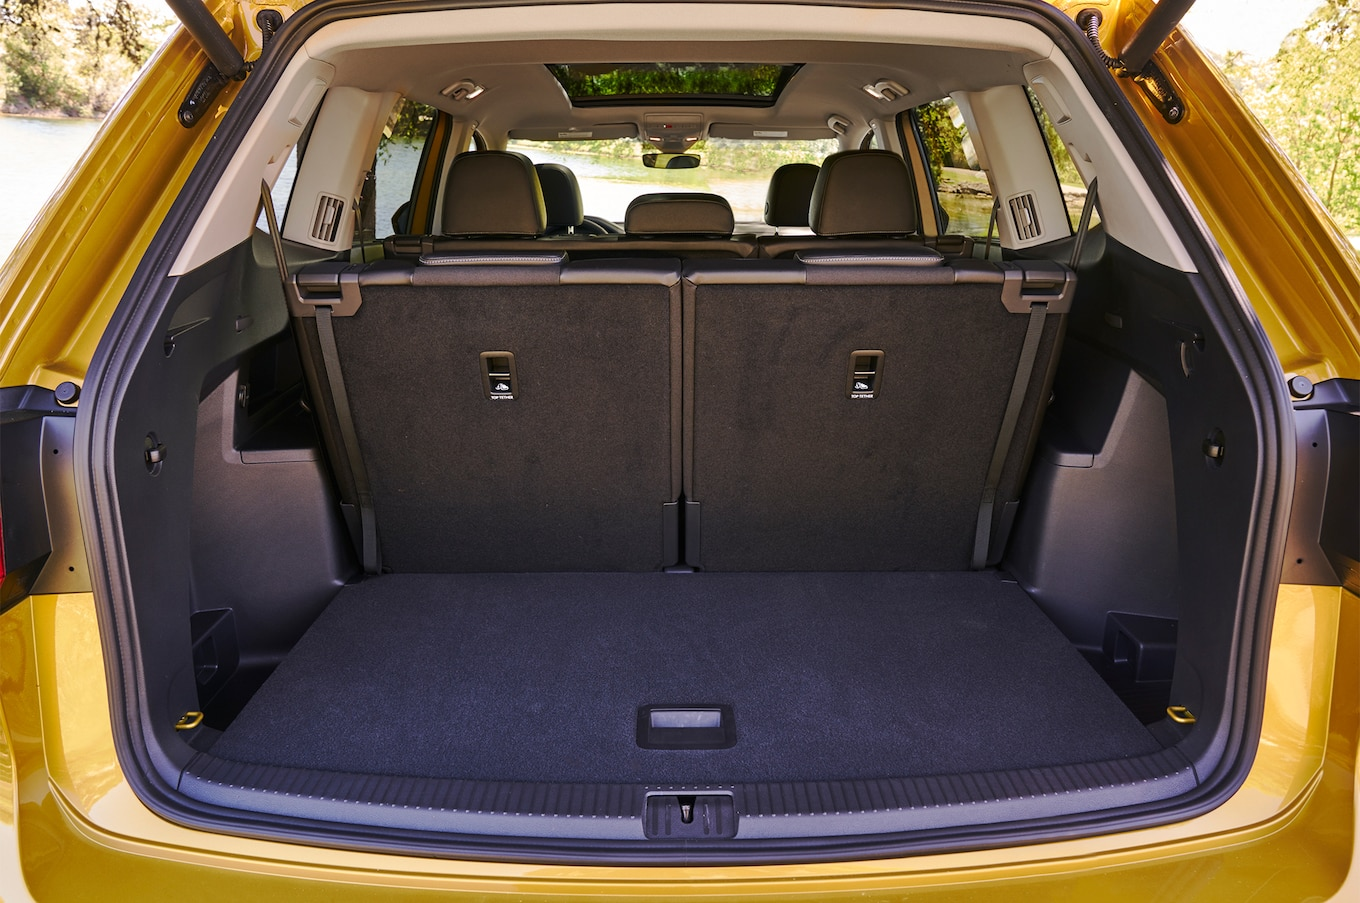 2018 Volkswagen Atlas cargo space 01